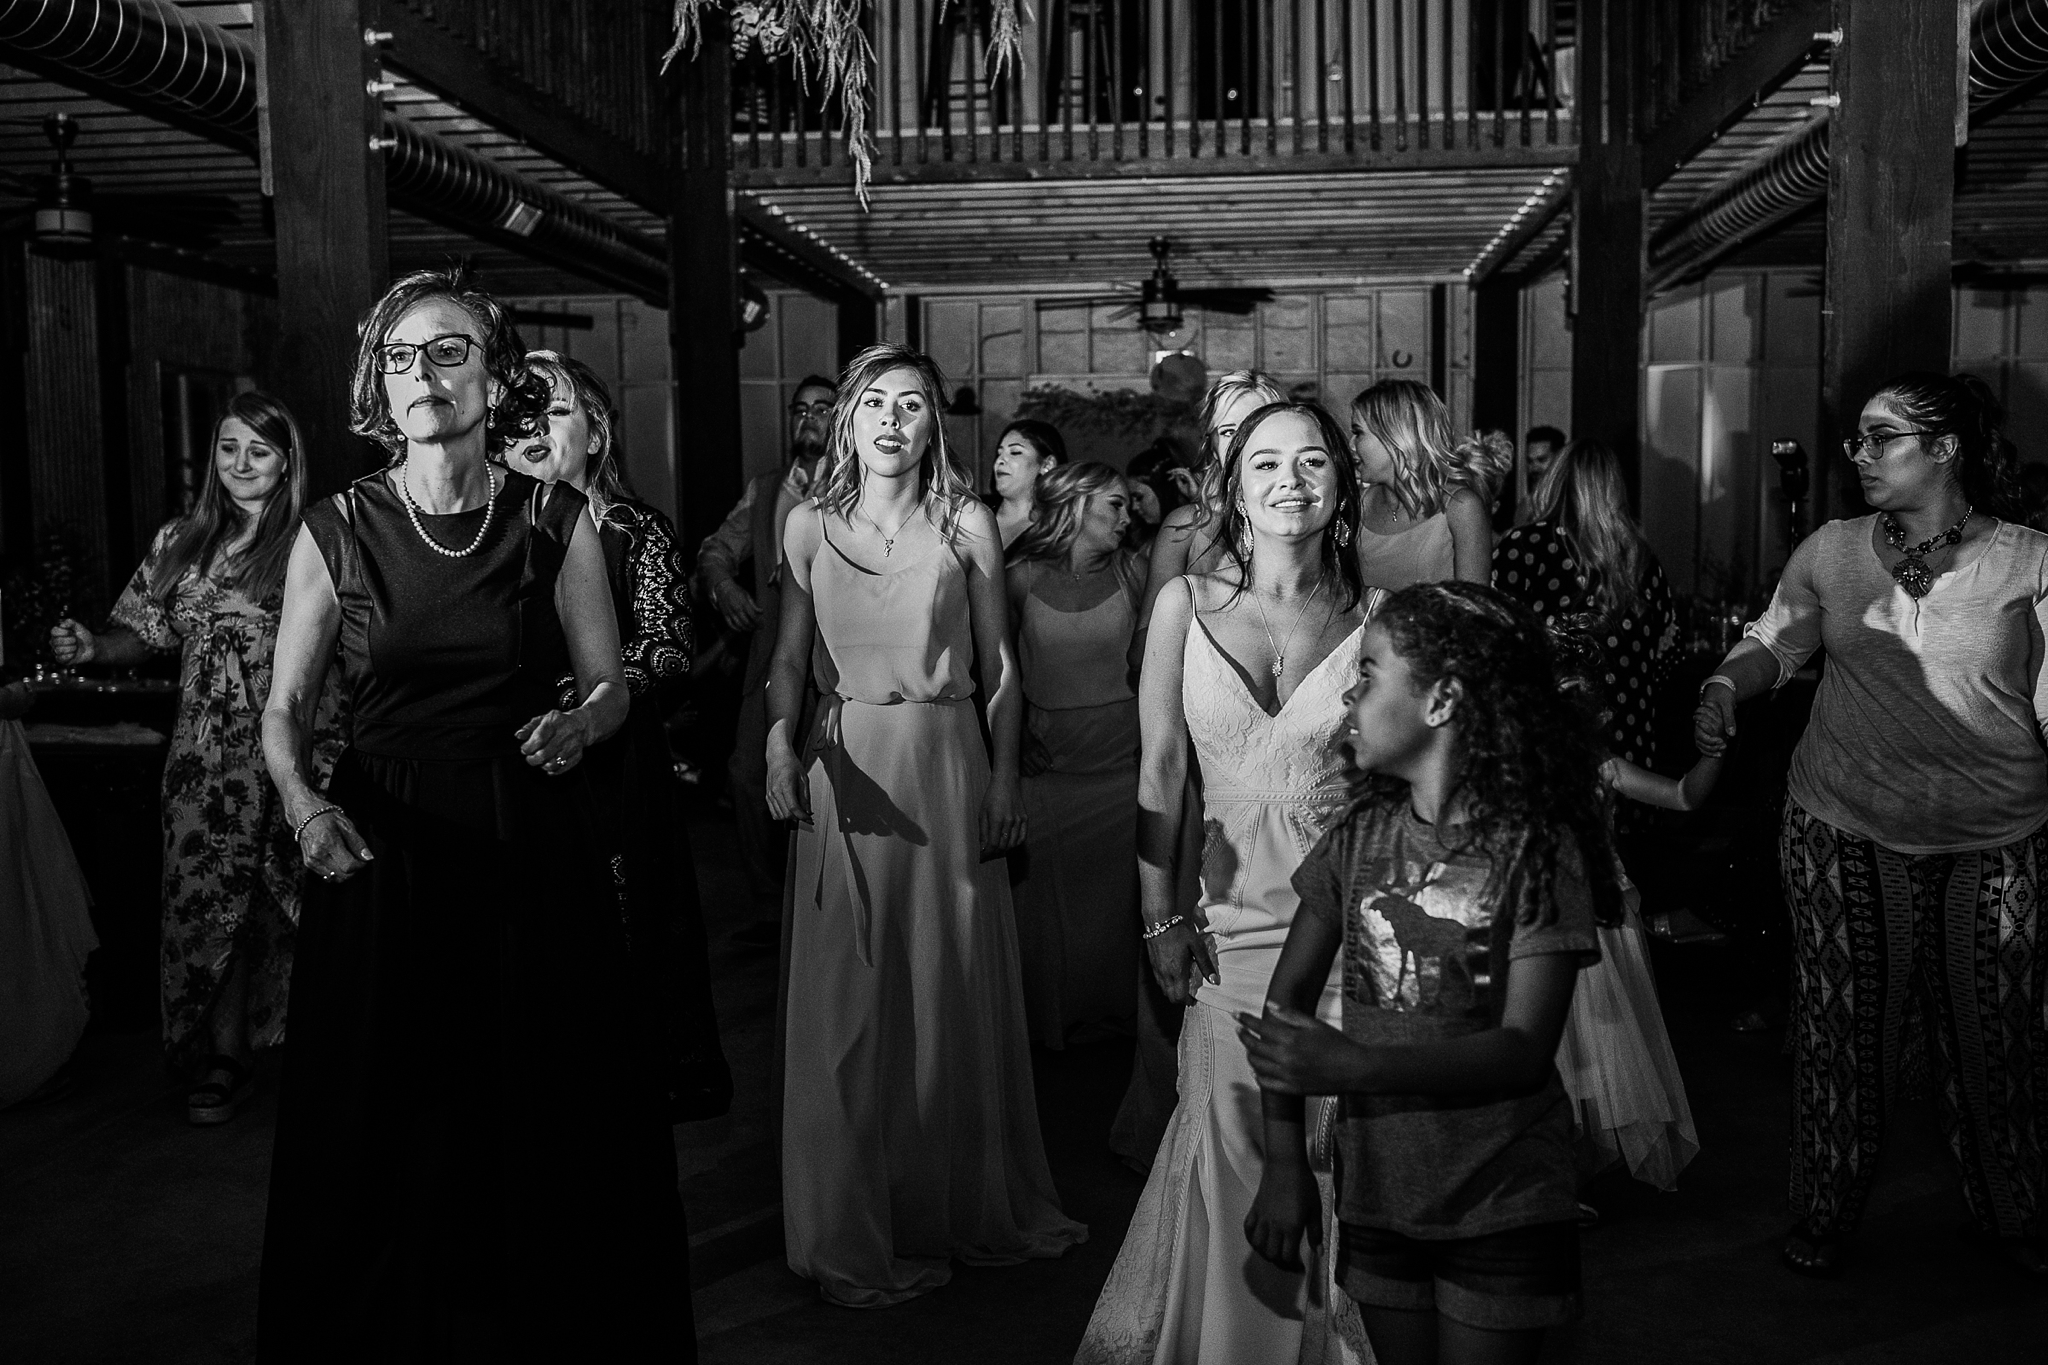 Alicia+lucia+photography+-+albuquerque+wedding+photographer+-+santa+fe+wedding+photography+-+new+mexico+wedding+photographer+-+new+mexico+wedding+-+new+mexico+wedding+-+barn+wedding+-+enchanted+vine+barn+wedding+-+ruidoso+wedding_0169.jpg